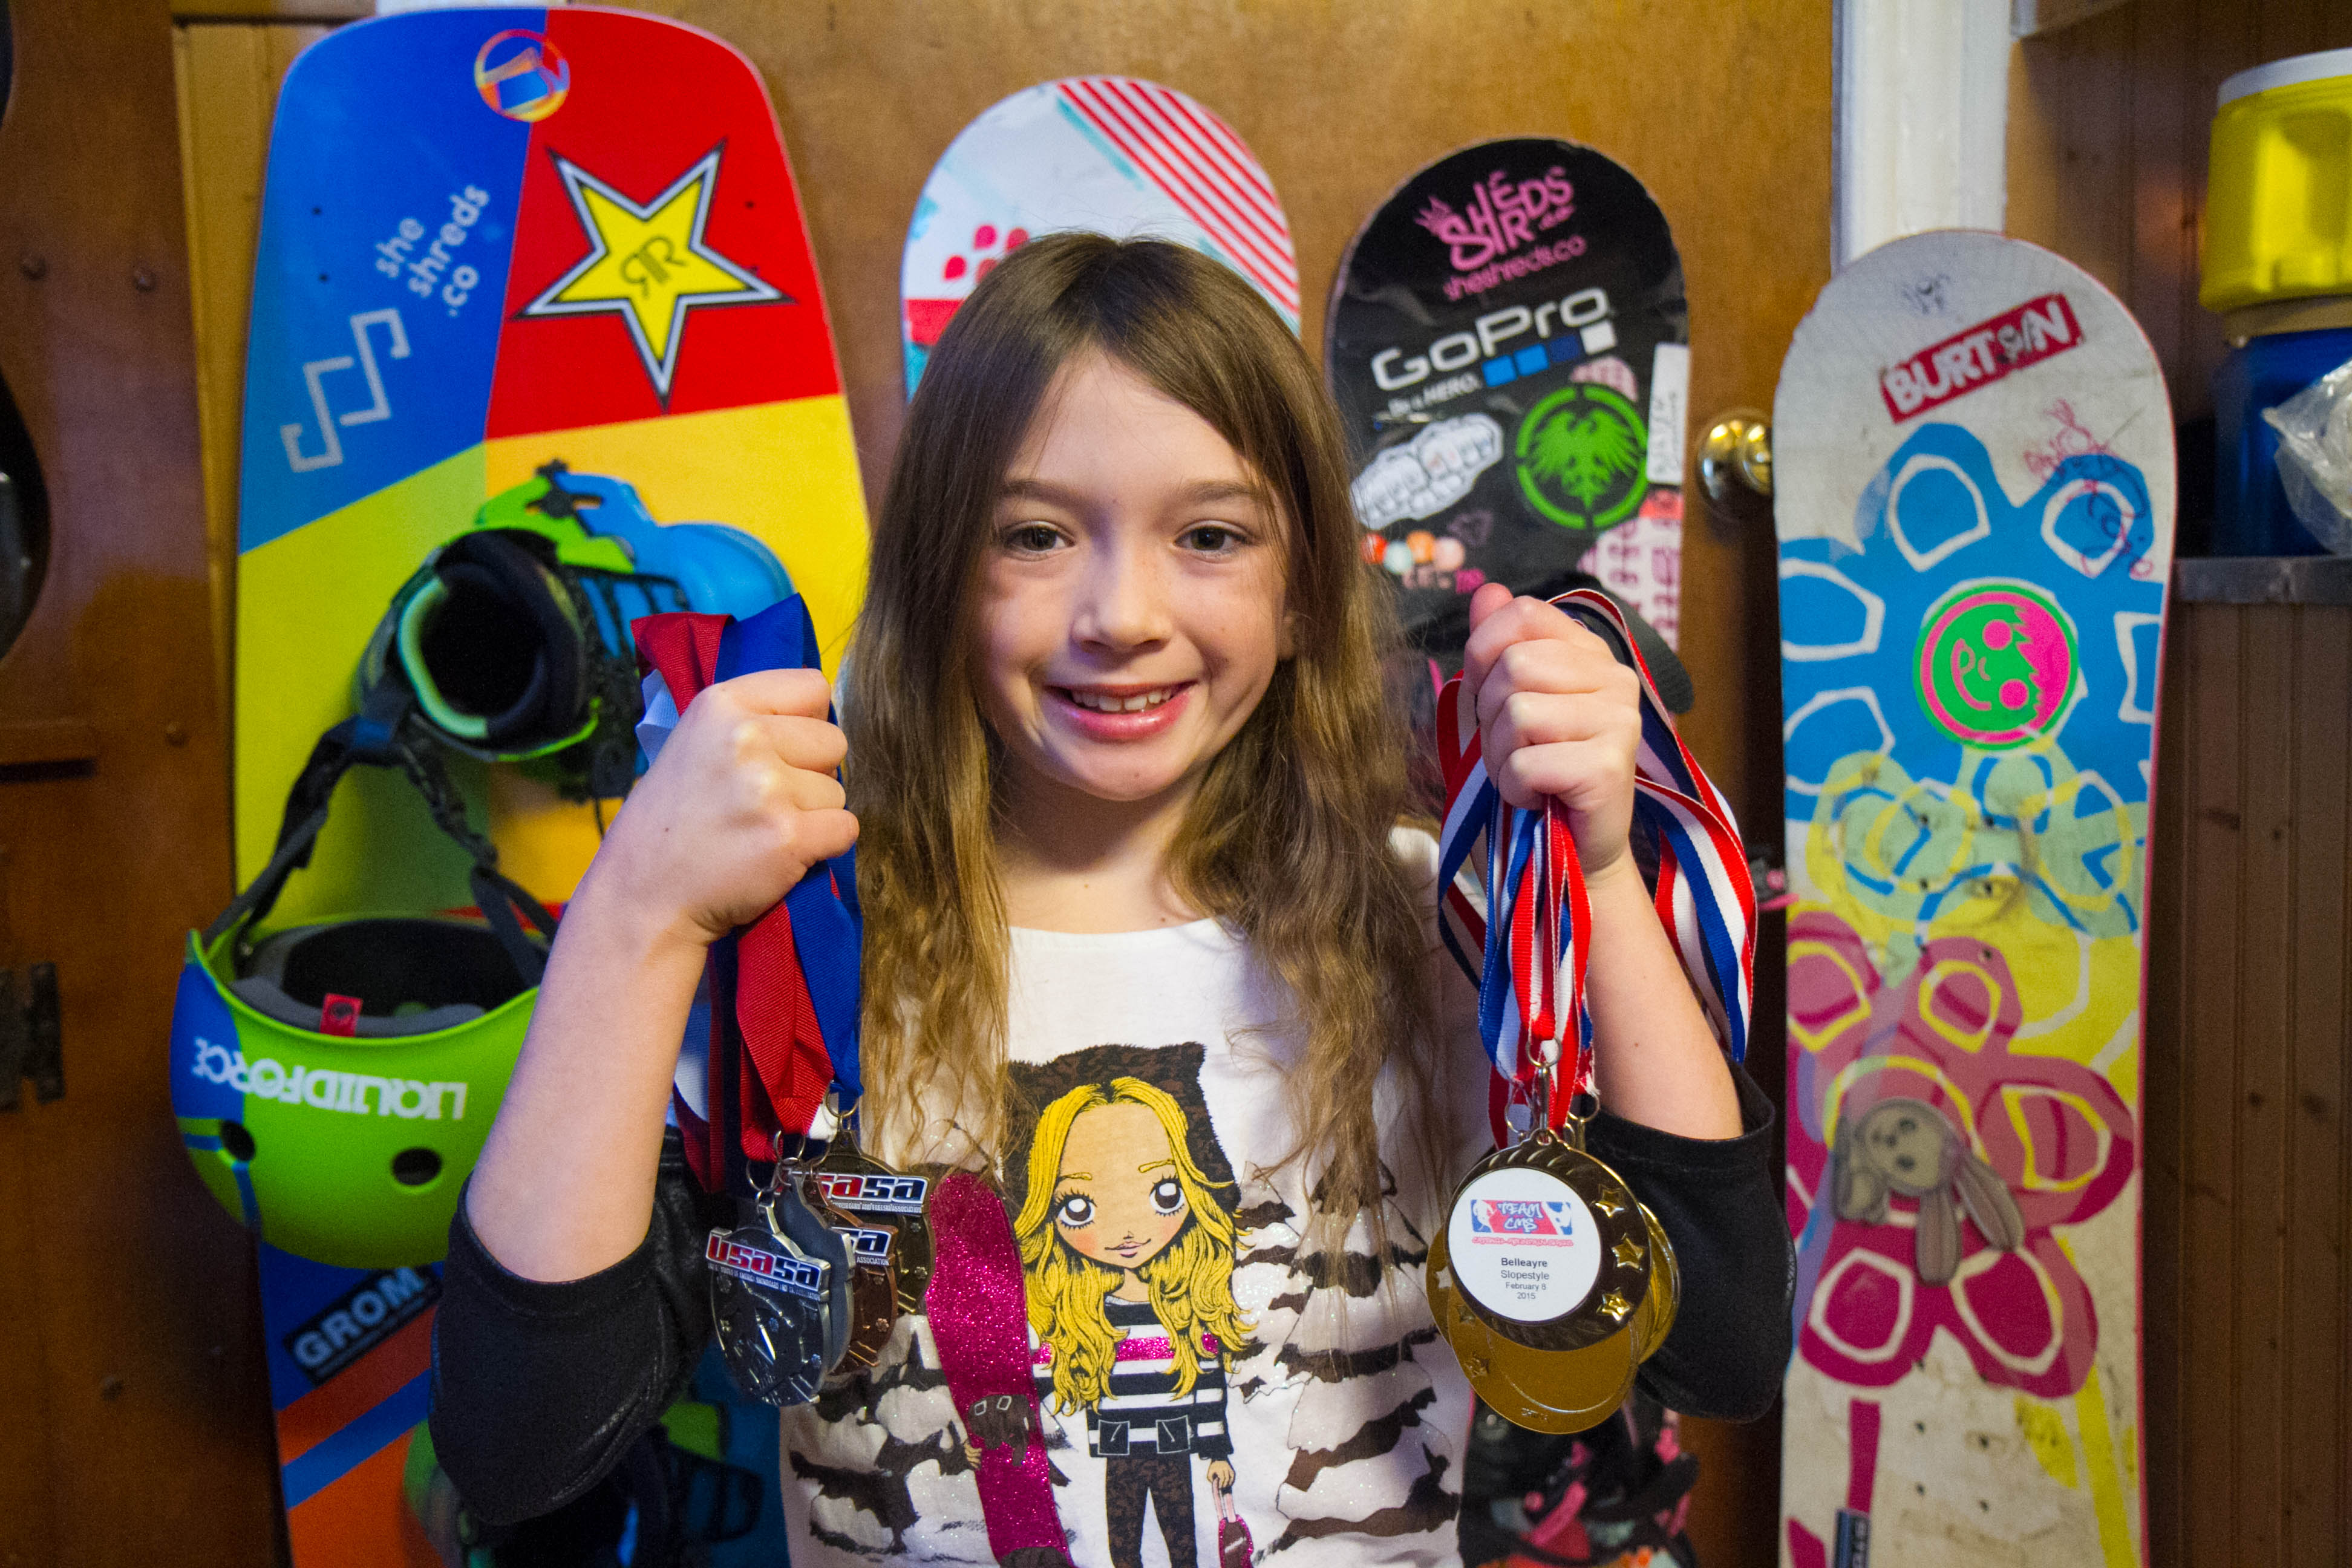 PJ Third Grader Brings Home Medals from National Snowboard Competition